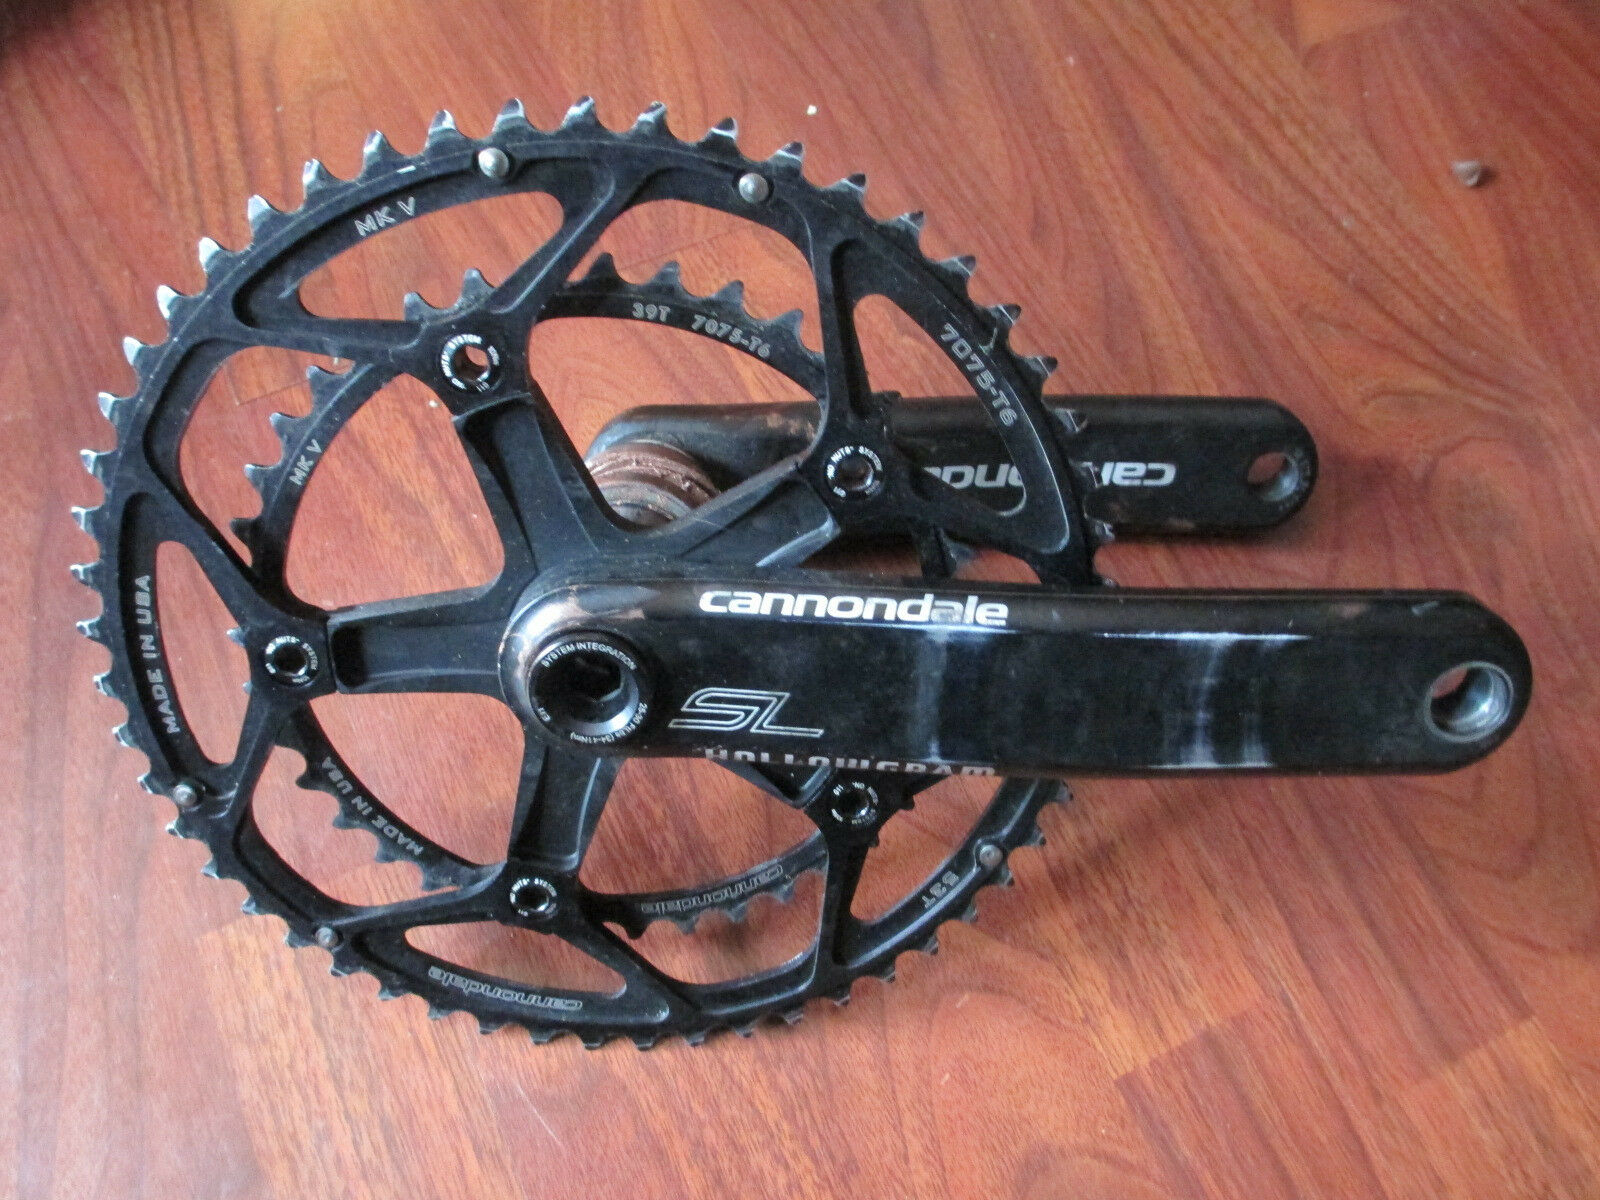 CANNONDALE HOLLOWGRAM SL 53 39 172.5 CRANK SET COMPLETE BB30  BEARINGS SPINDLE  quality first consumers first